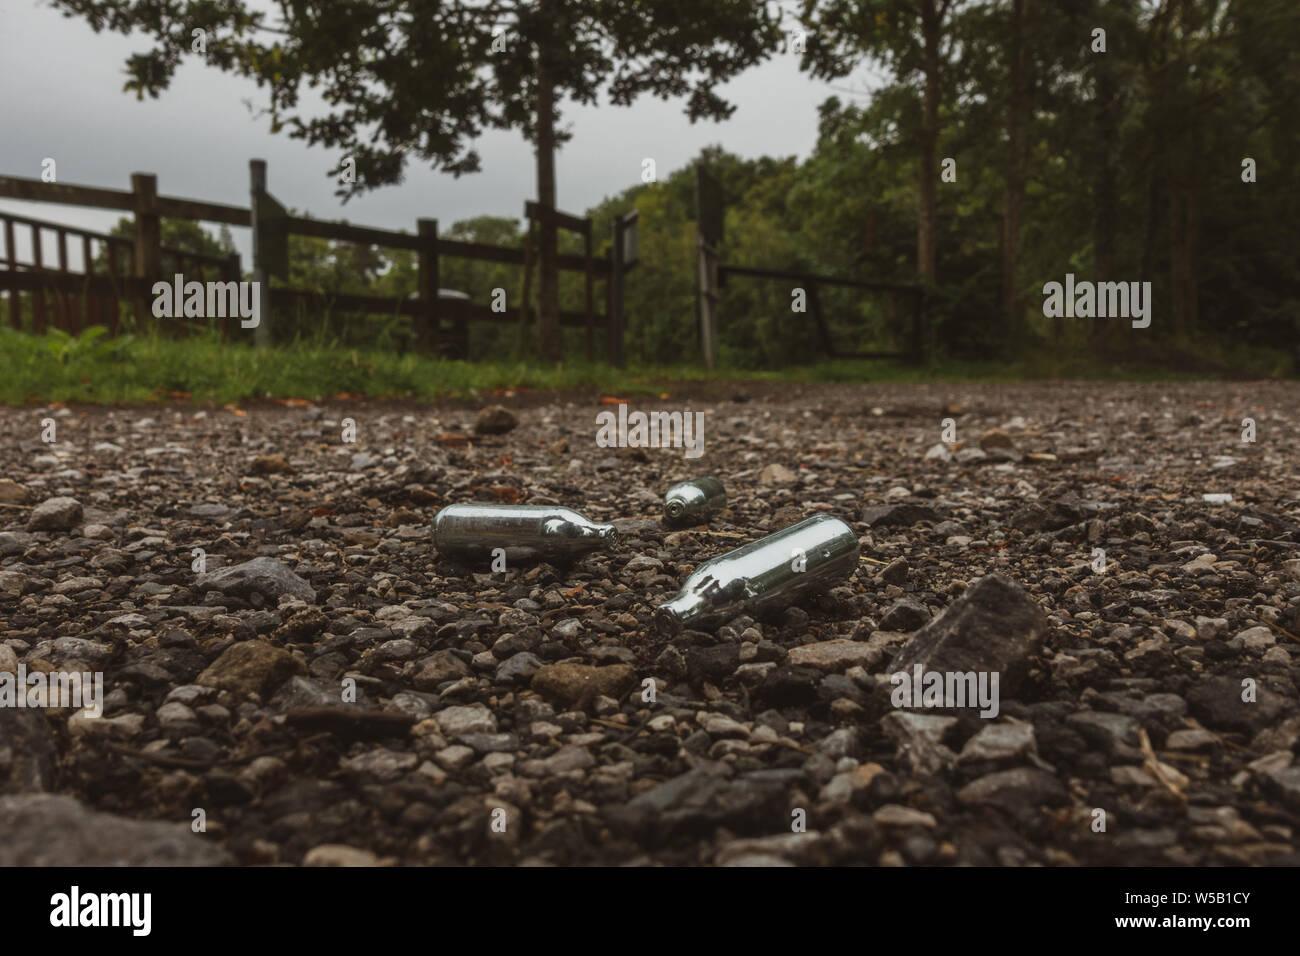 Discarded gas cannisters of laughing gas (nitrous oxide) used as a recreational drug, in a park in a rural area. UK Stock Photo